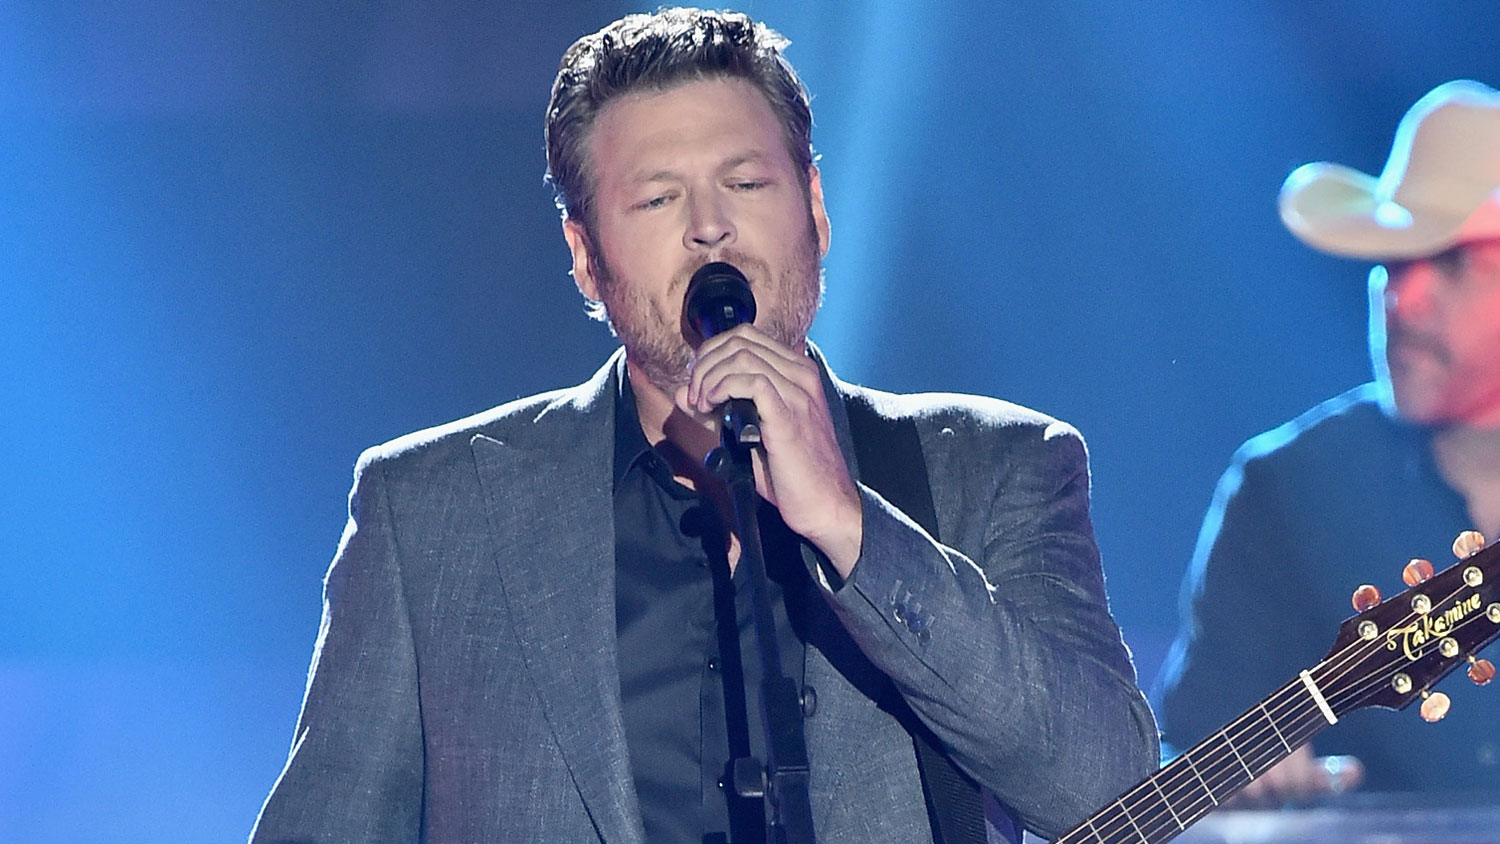 Blake Shelton Performs 39 Every Time I Hear That Song 39 At